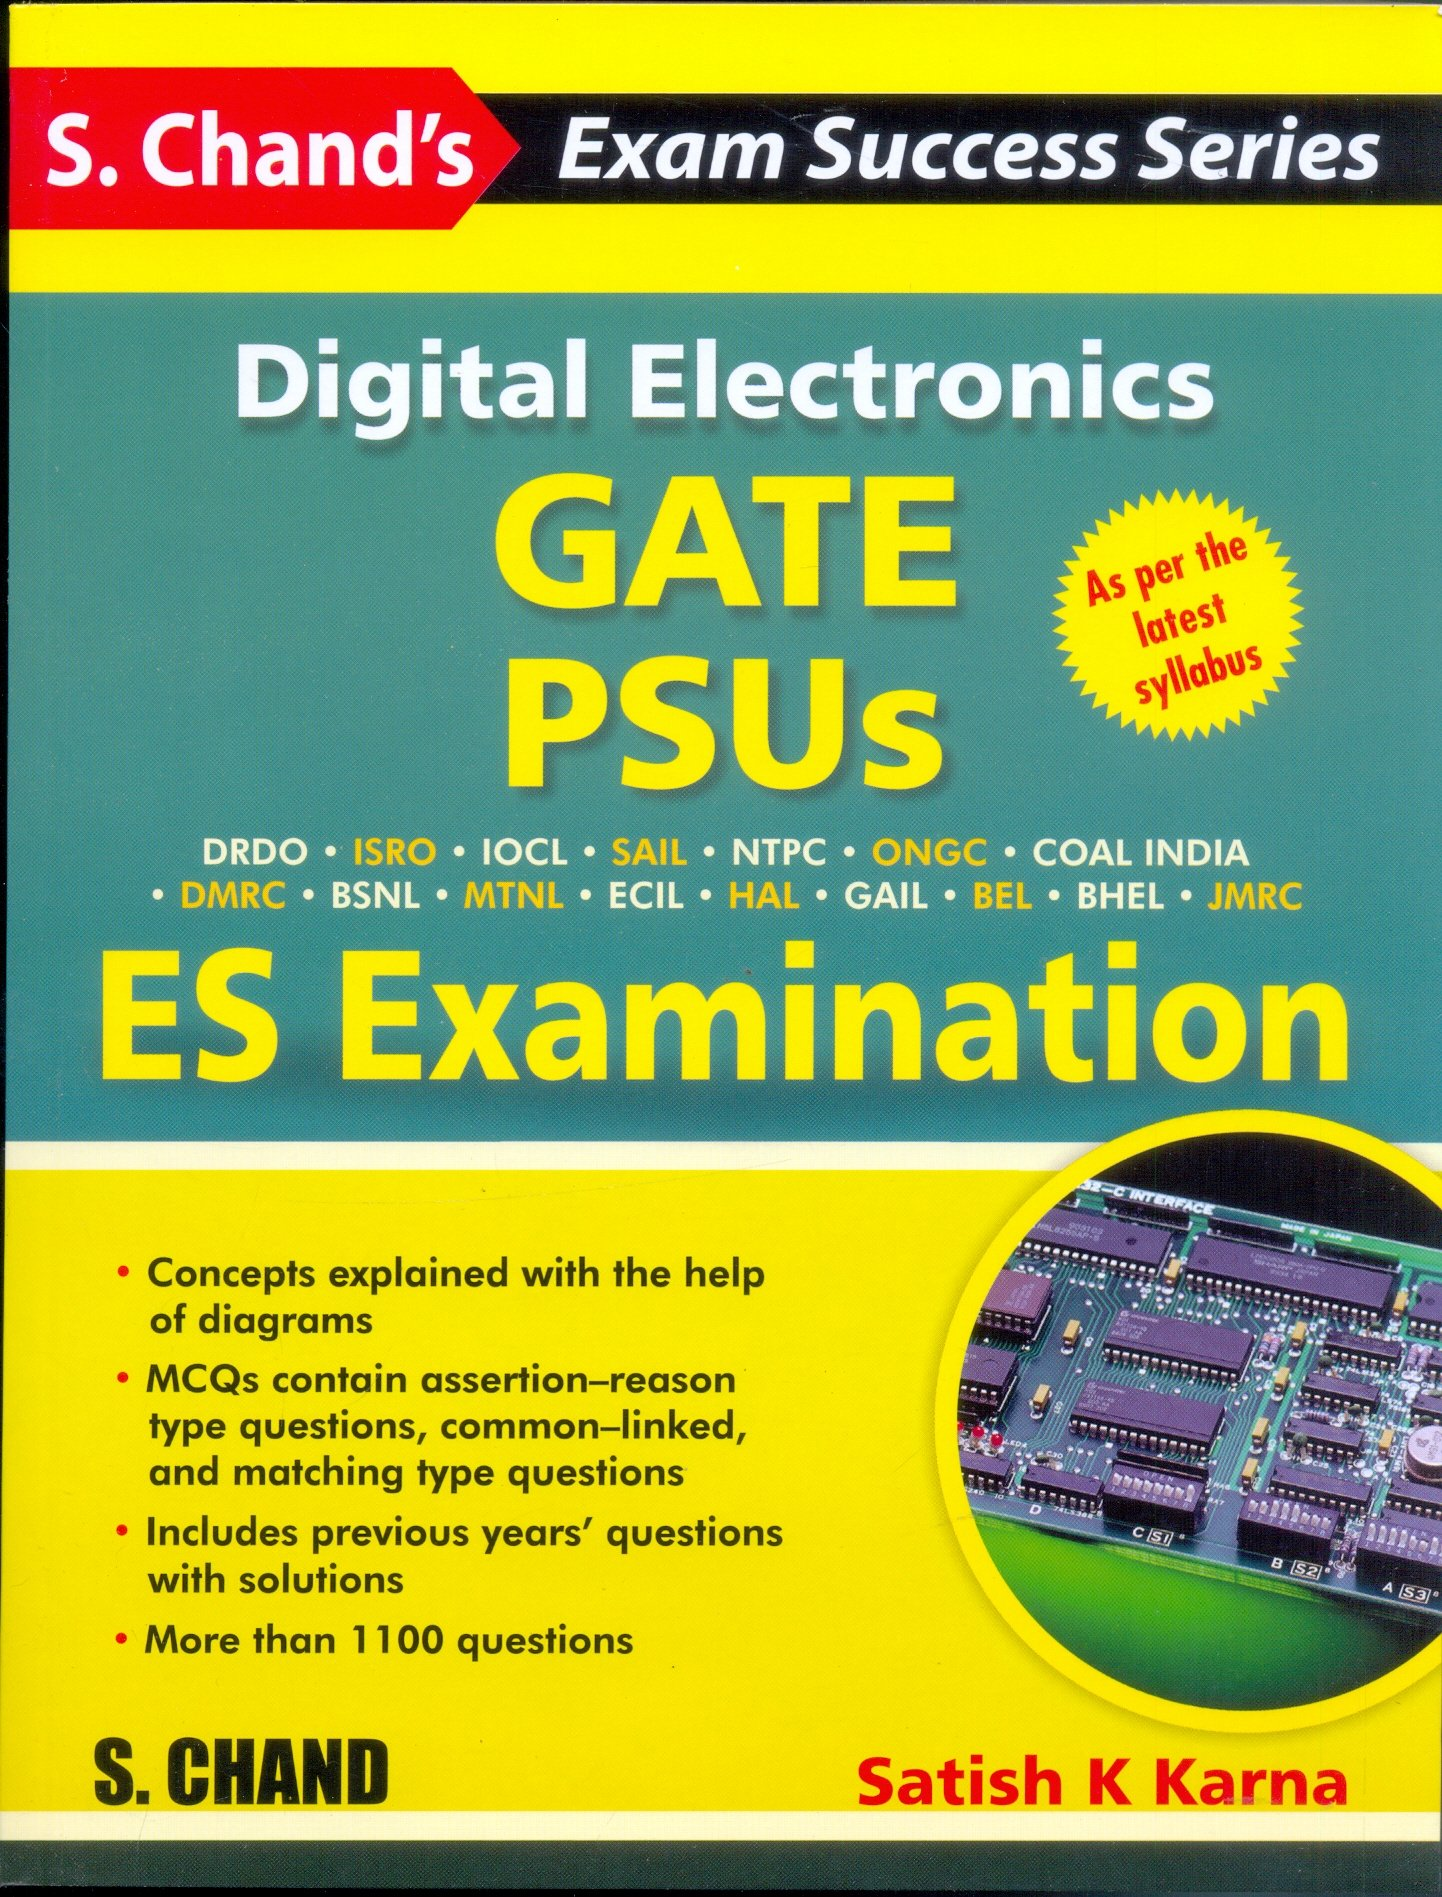 Buy Digital Electronics Gate Psus And Es Examination Book Online At Electronic Circuit Design Mcqs Low Prices In India Reviews